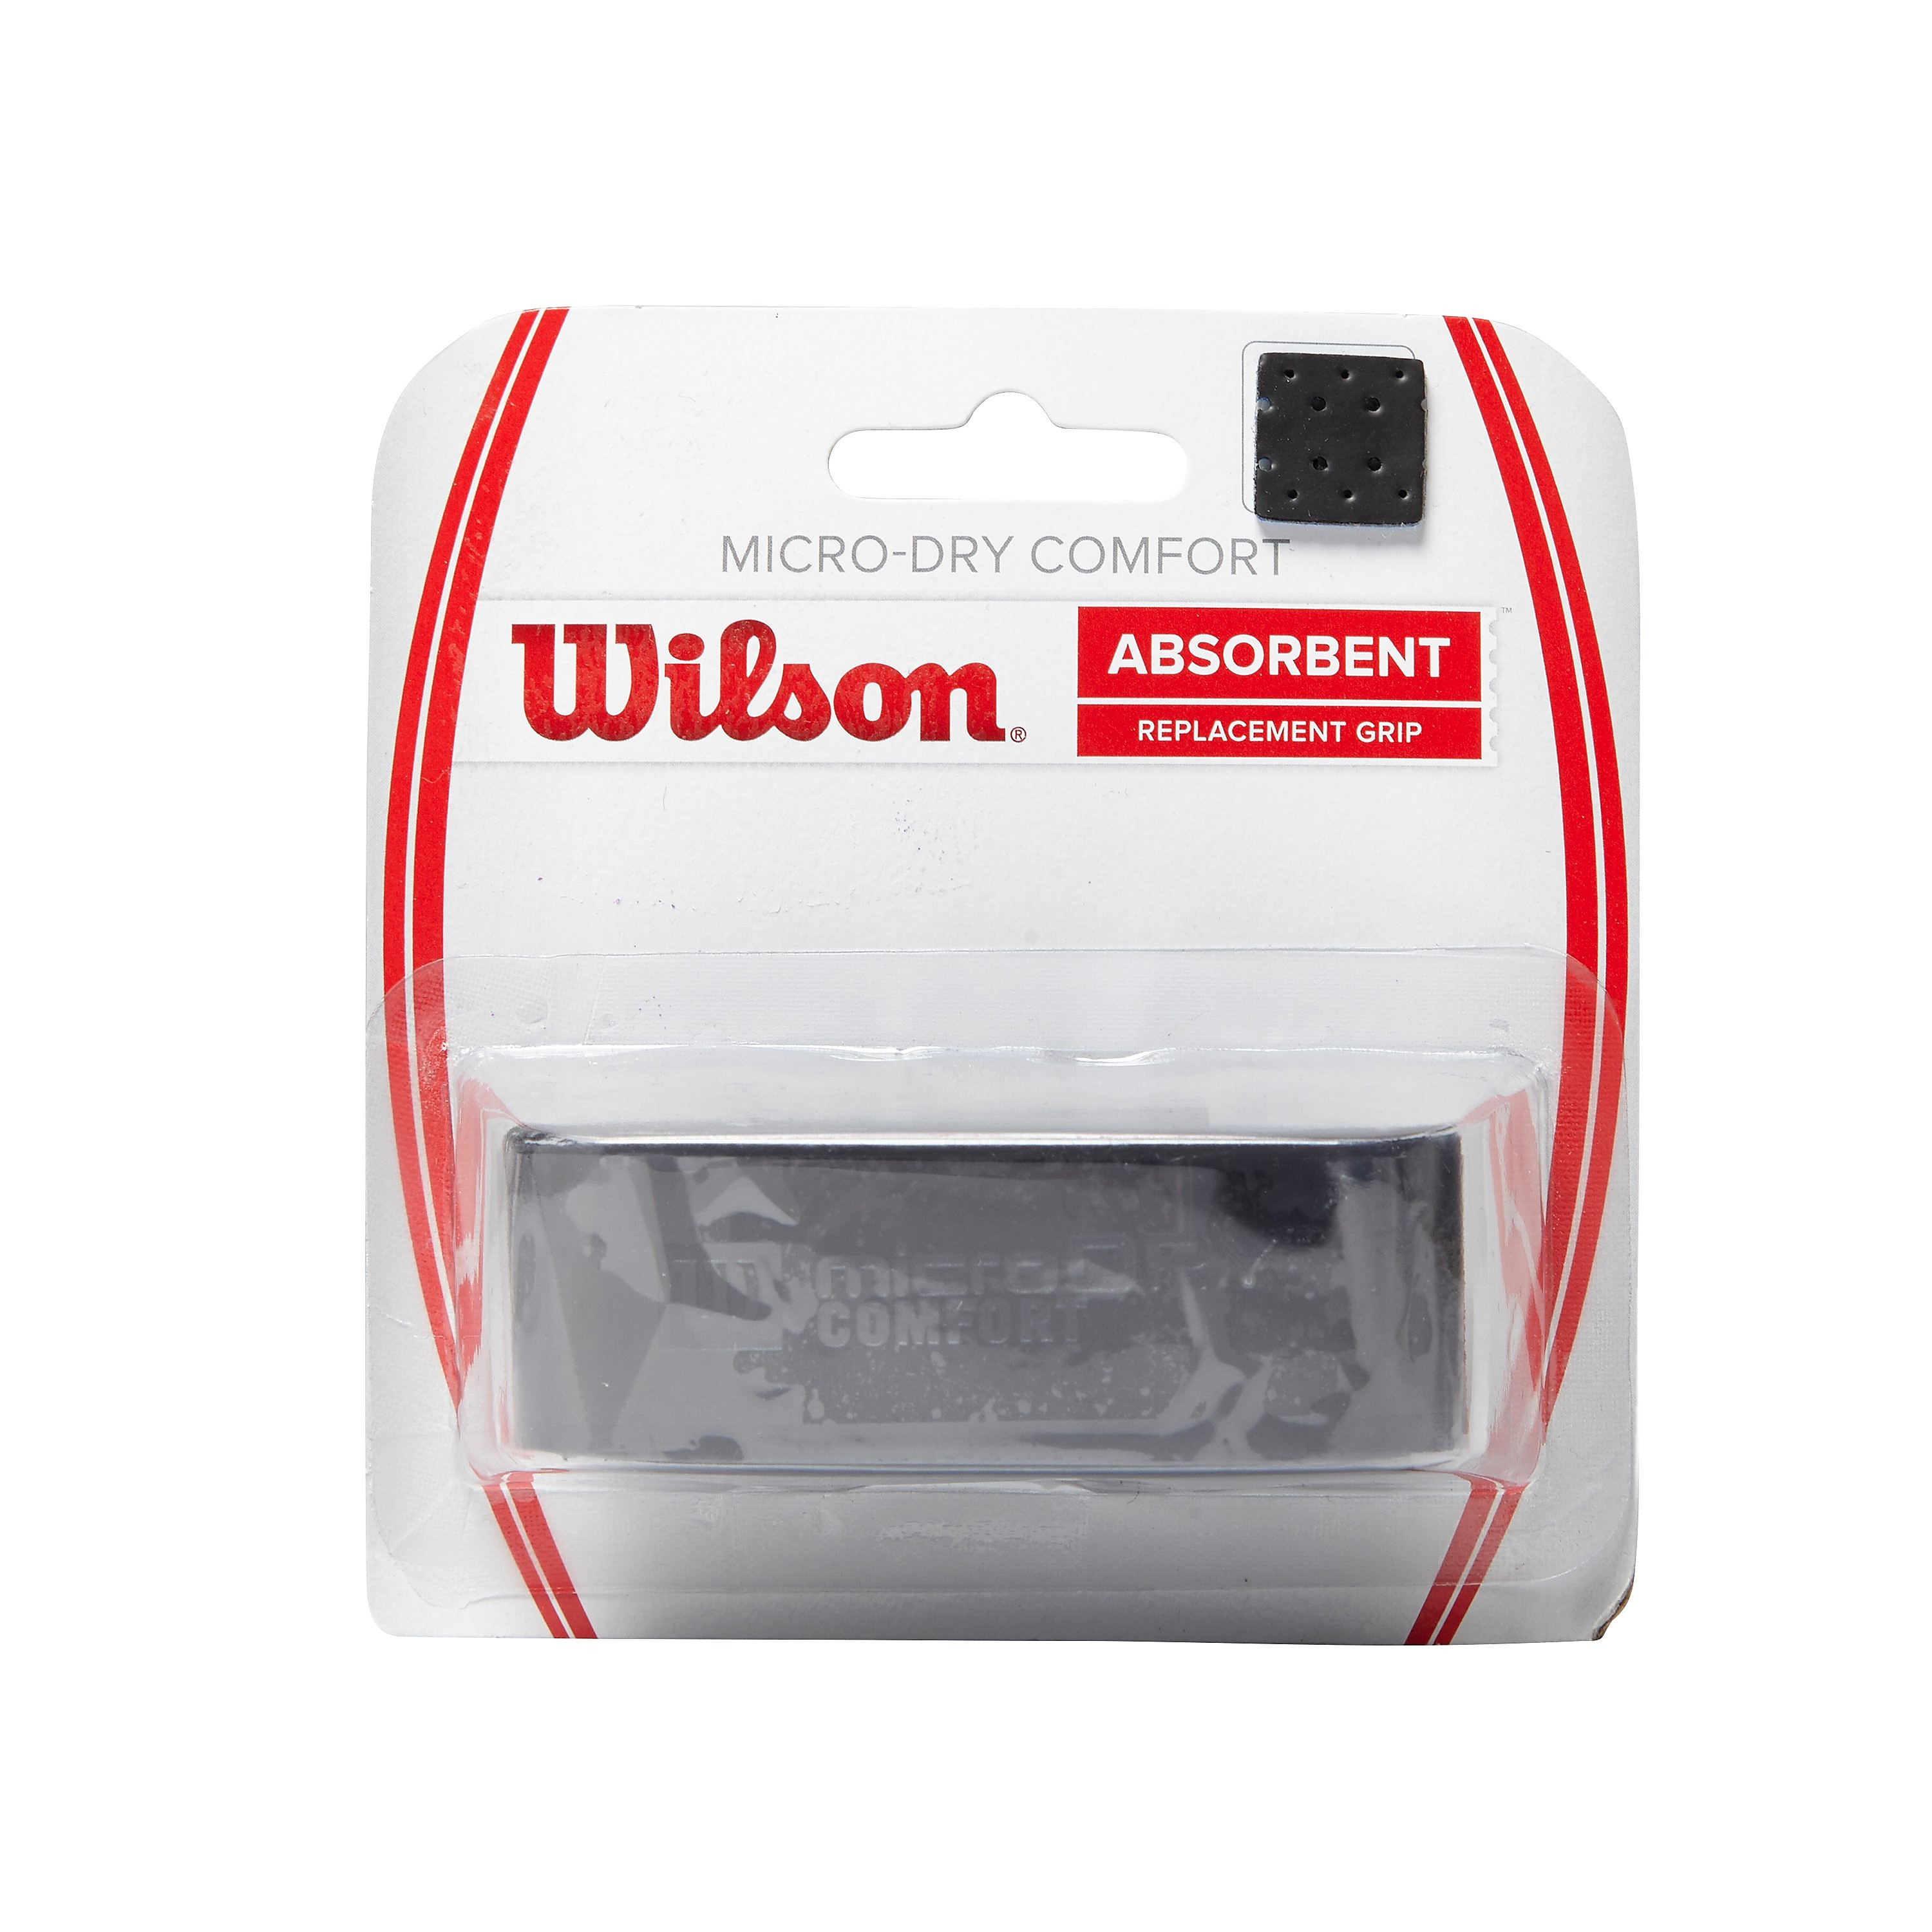 Wilson Micro-Dry + Comfort Replacement Grip